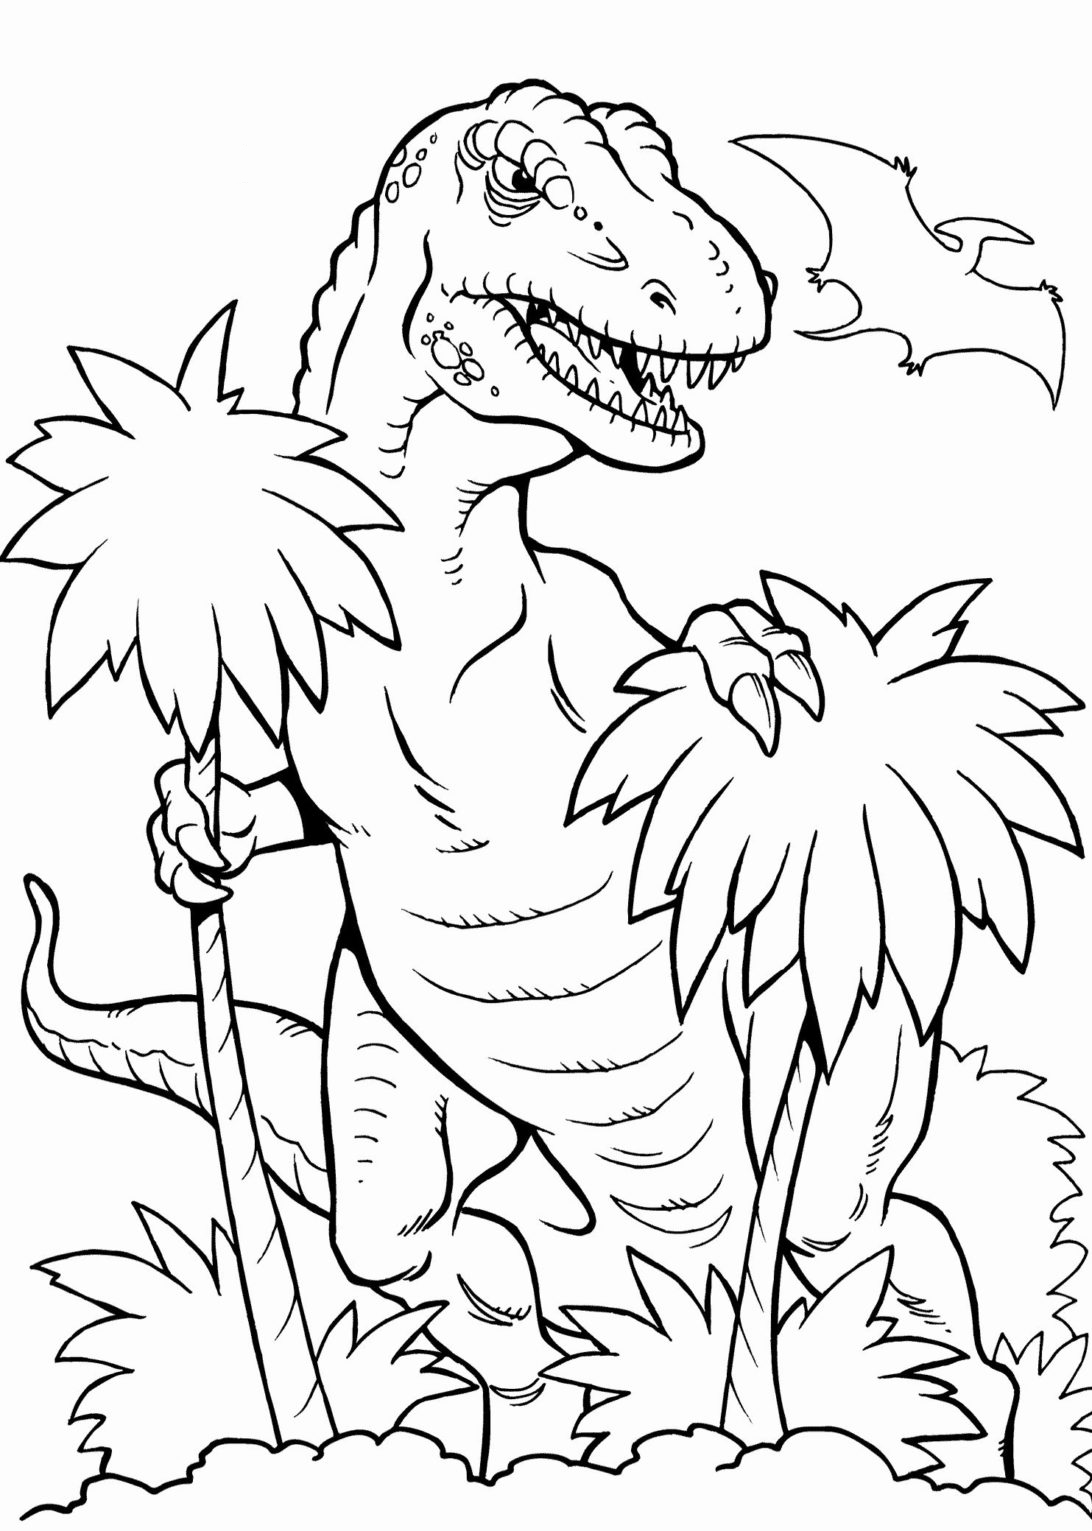 Behind the trees Coloring Page